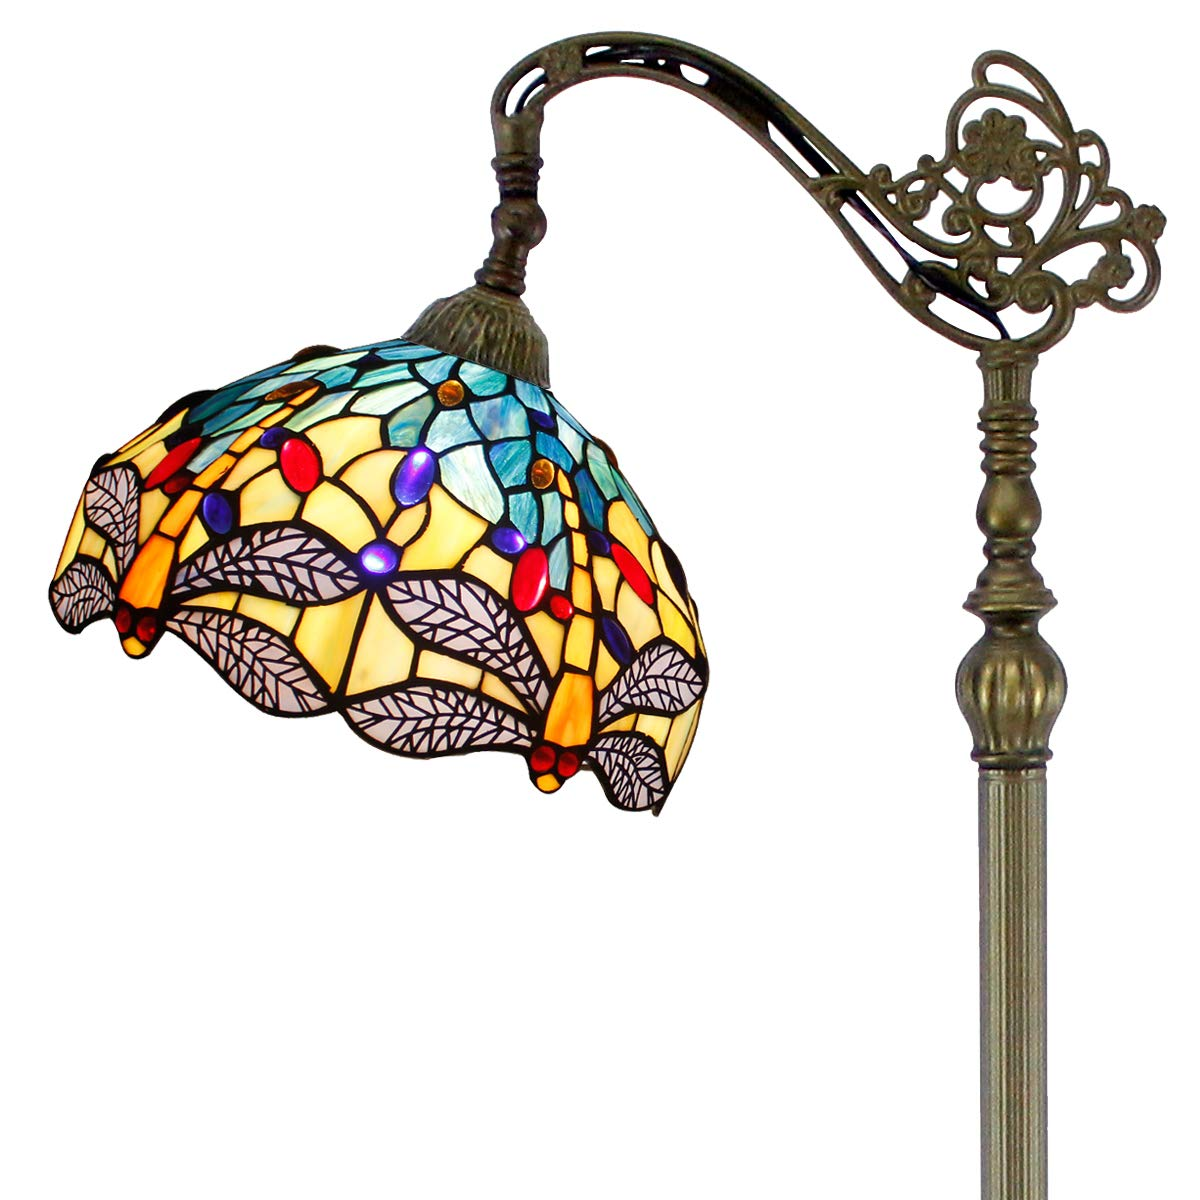 Tiffany Style Reading Floor Lamp Blue Yellow Stained Glass Dragonfly Lampshade in 64 Inch Tall Antique Arched Base for Girlfriend Bedroom Living Room Lighting Table Set S128 WERFACTORY